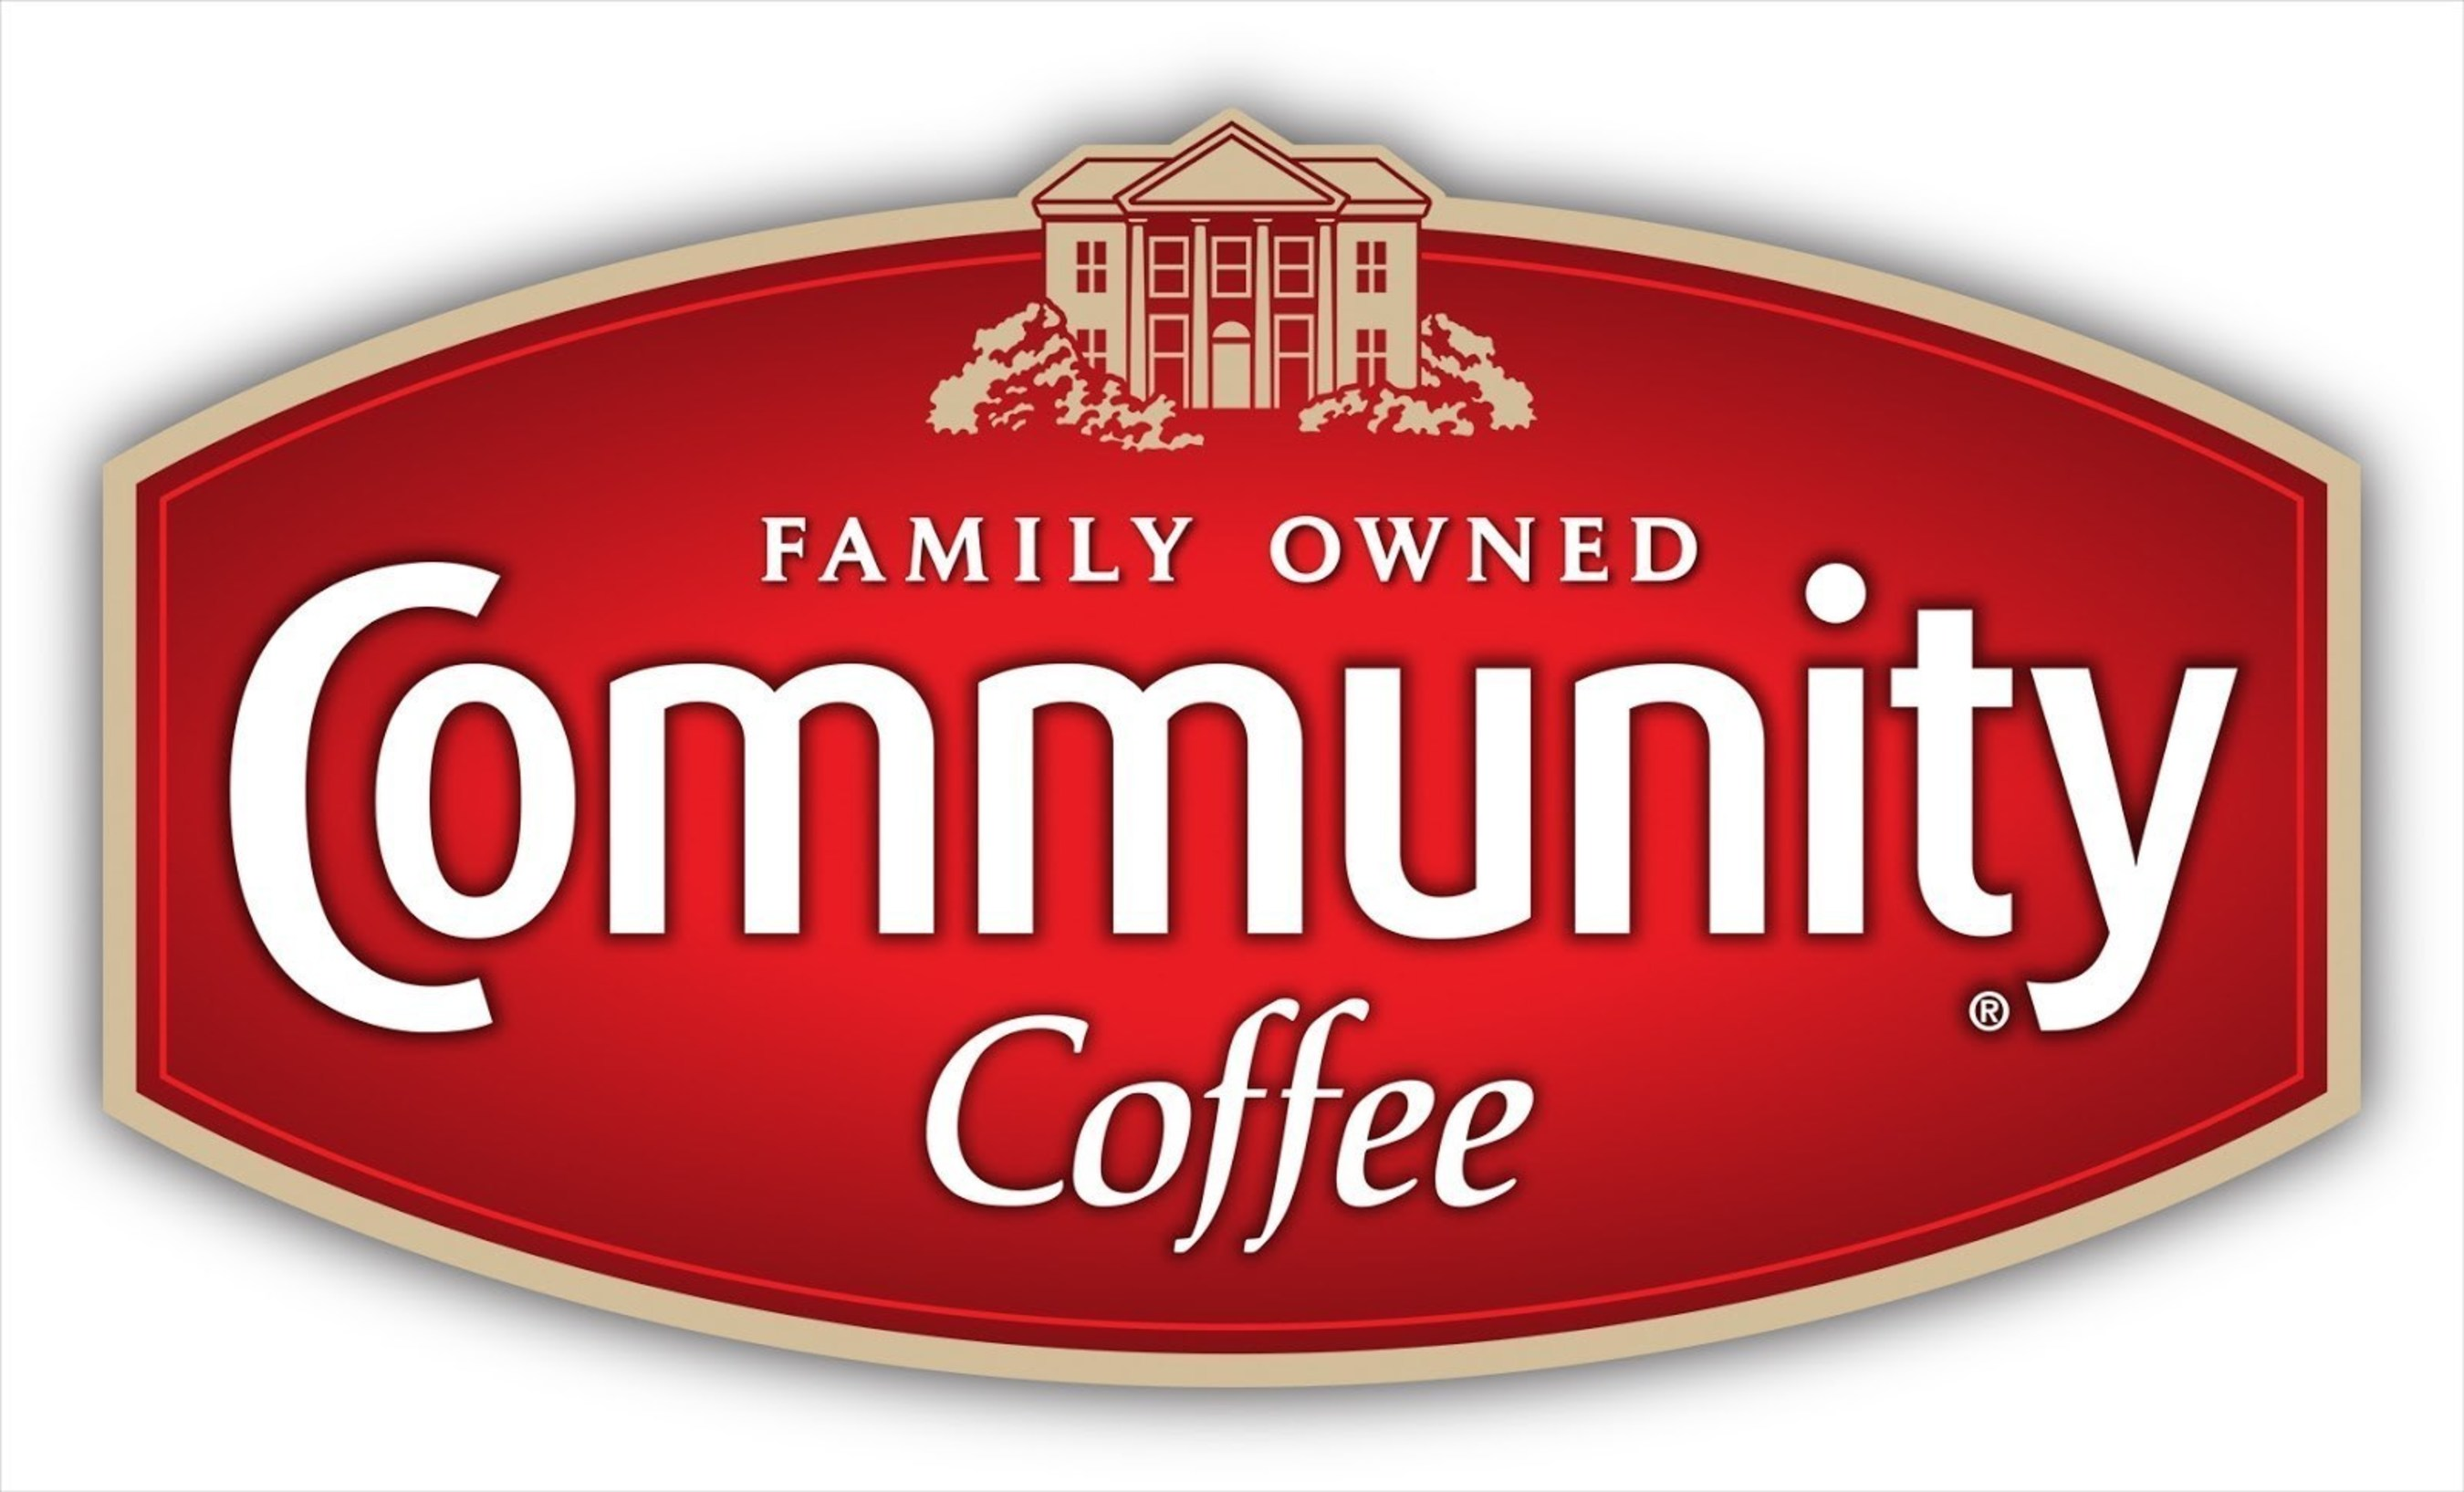 Southwest Airlines To Serve Community® Coffee On All Flights Beginning March 1